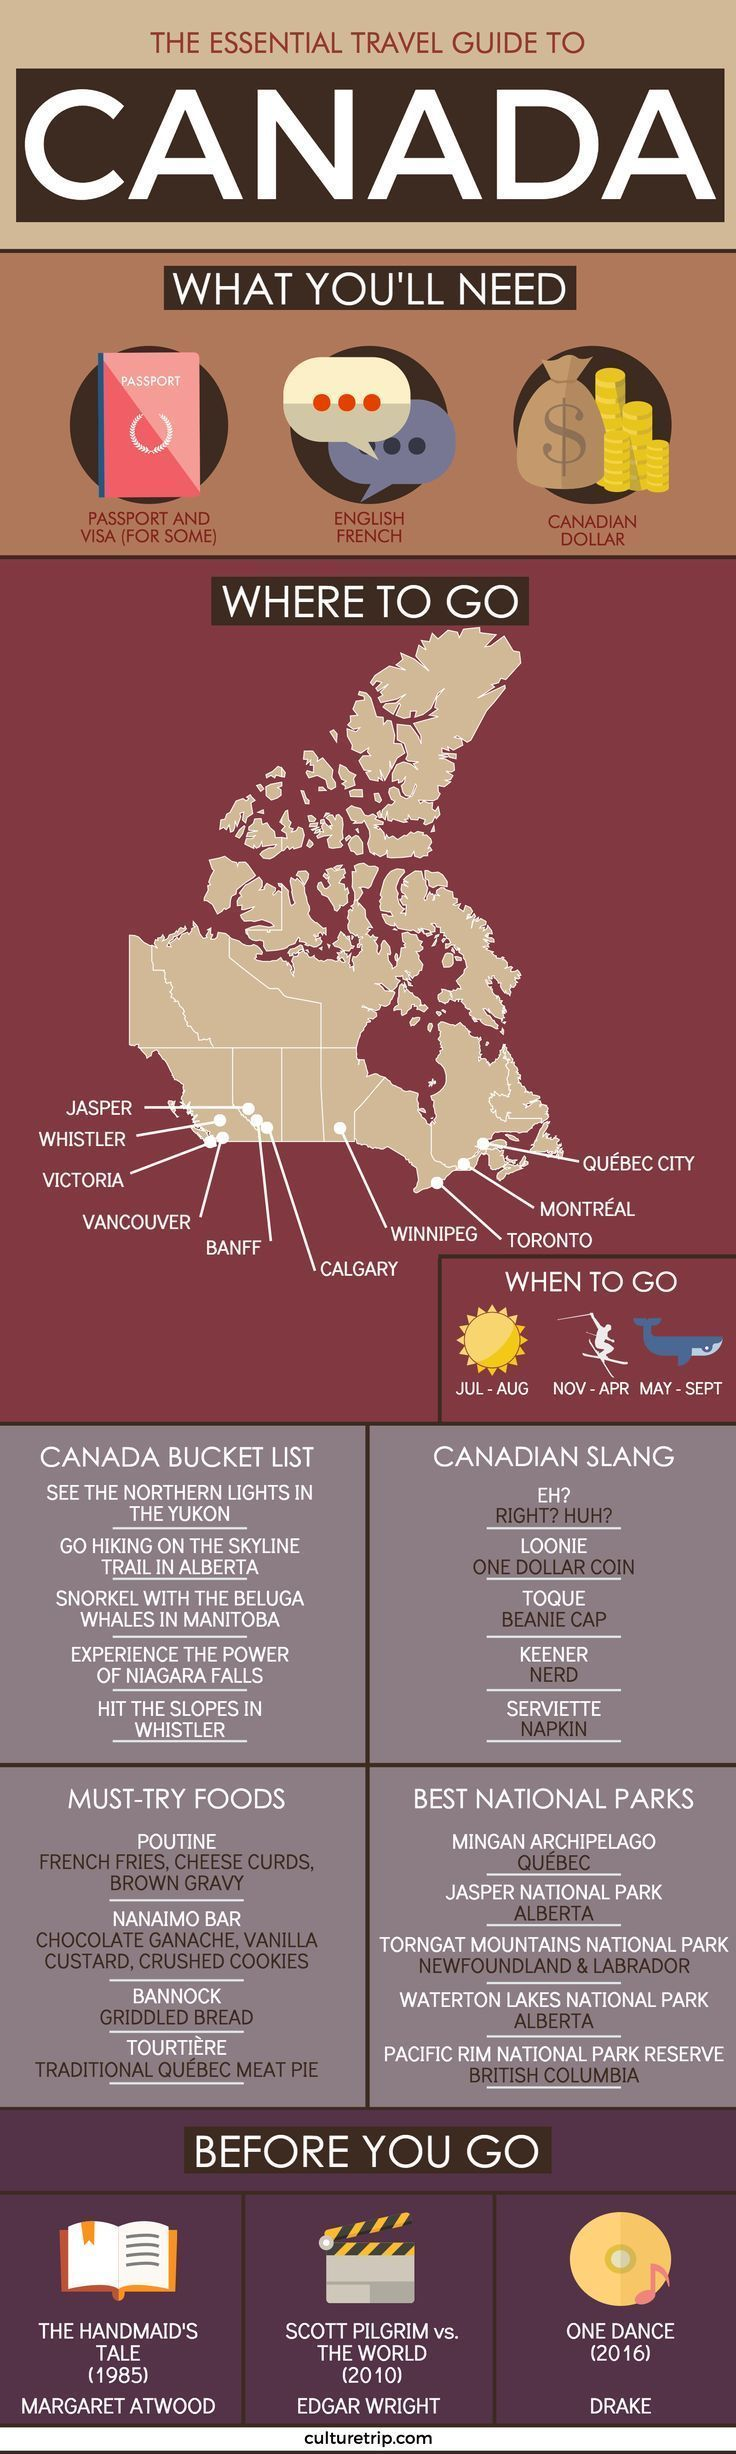 Some of this is very true - other's cracked me up! Also, Yukon is not pointed out on the map but is included in list of things to do... #travelfacts